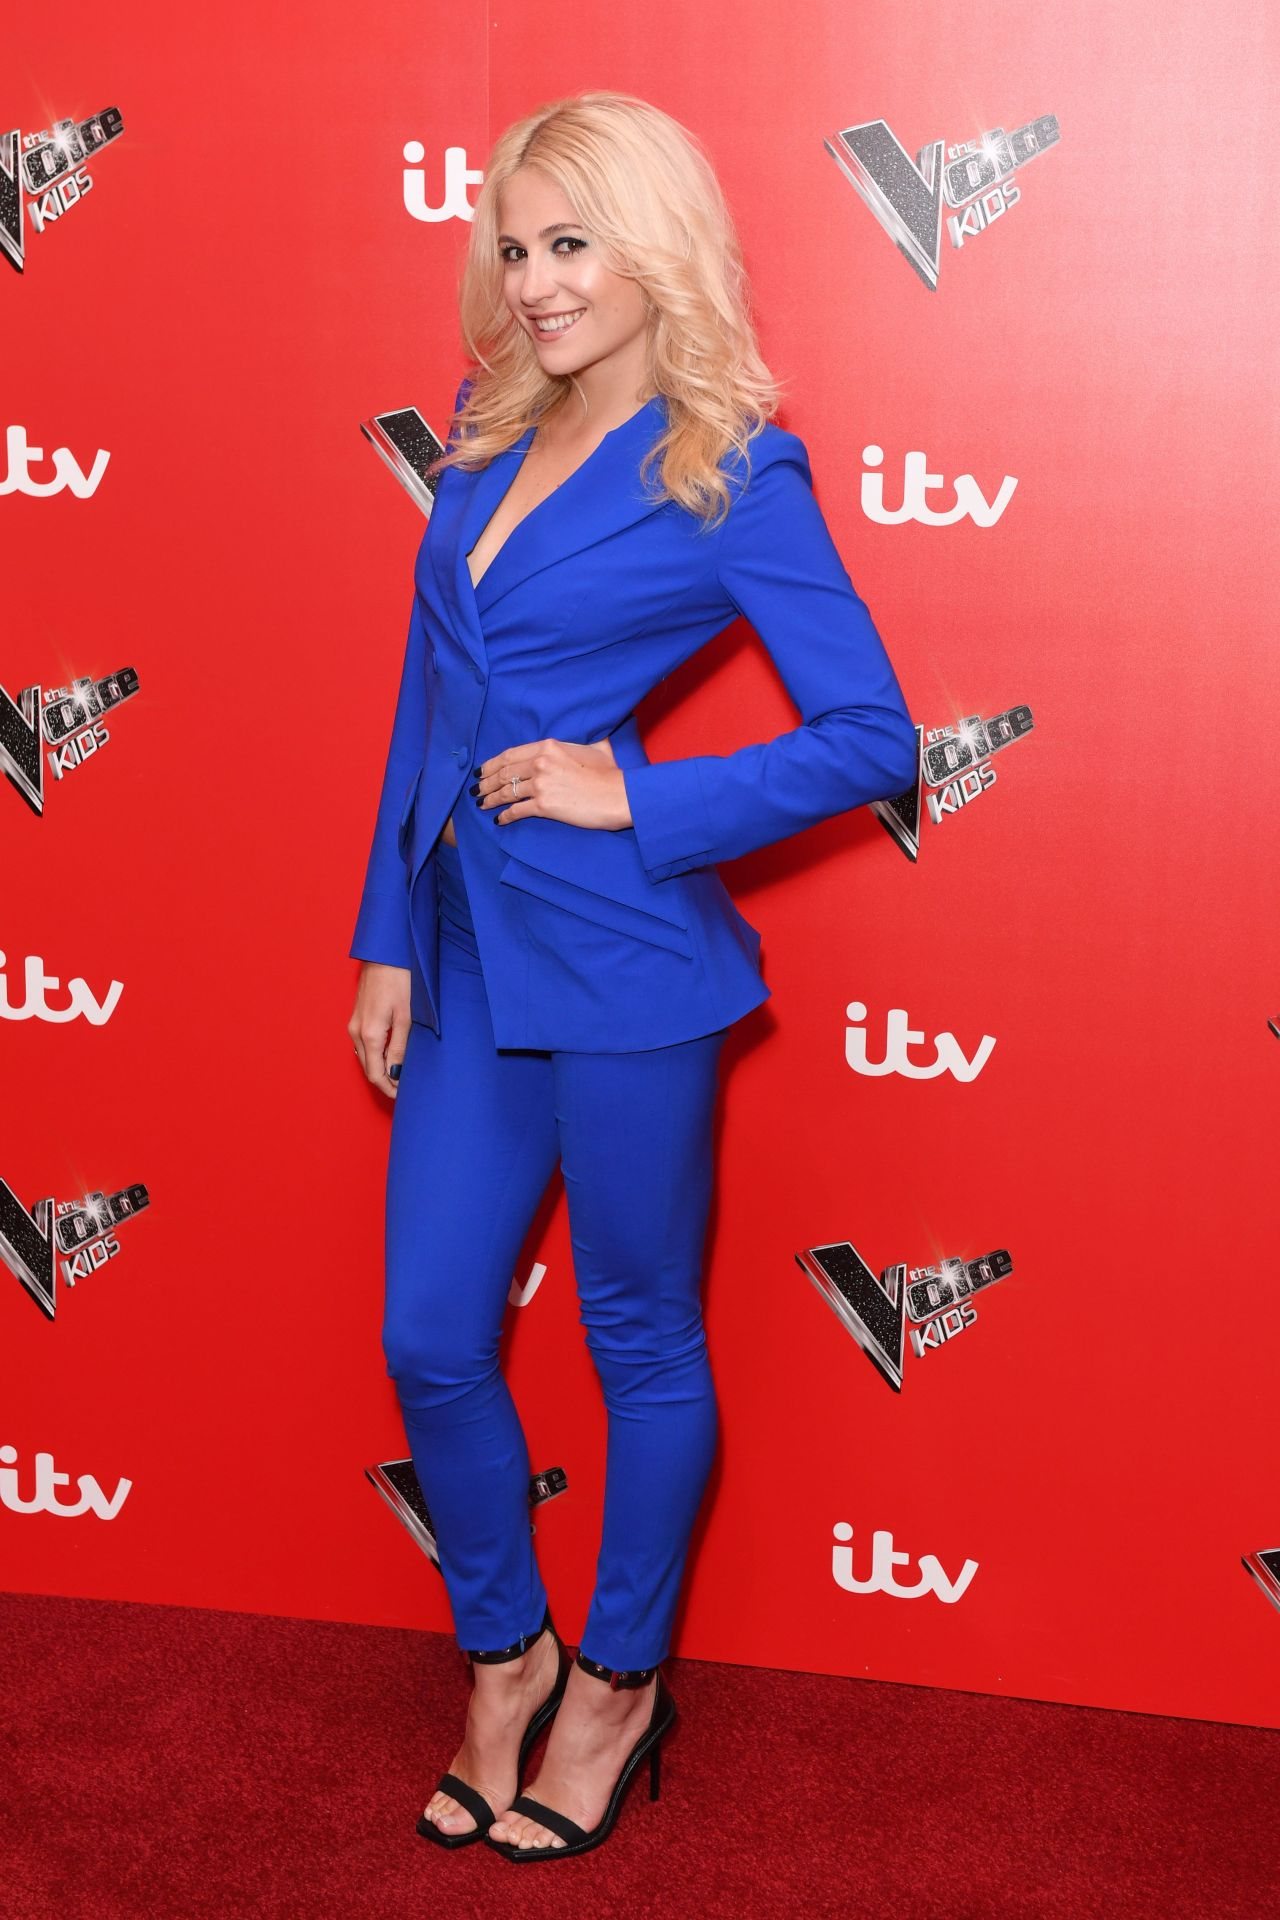 Pixie Lott Quot The Voice Kids Quot Tv Show Photocall In London